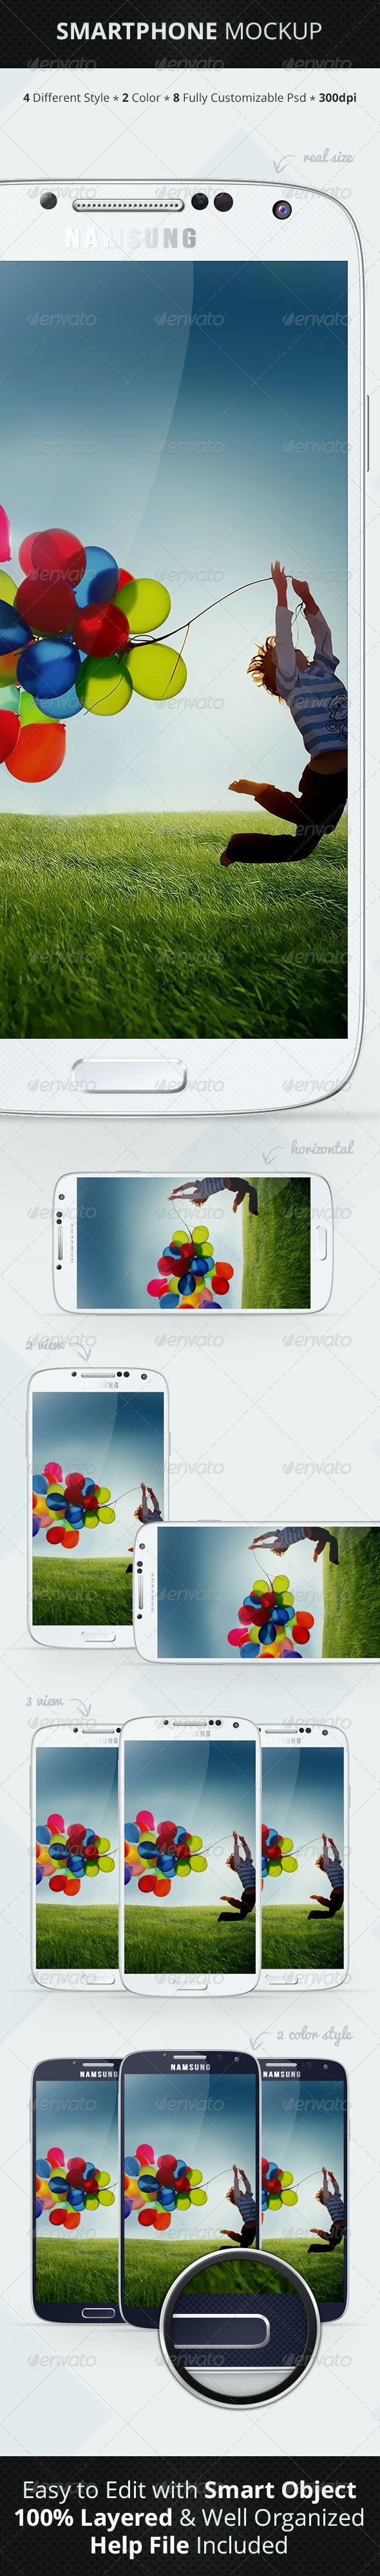 Smartphone Mockup - Mobile Displays